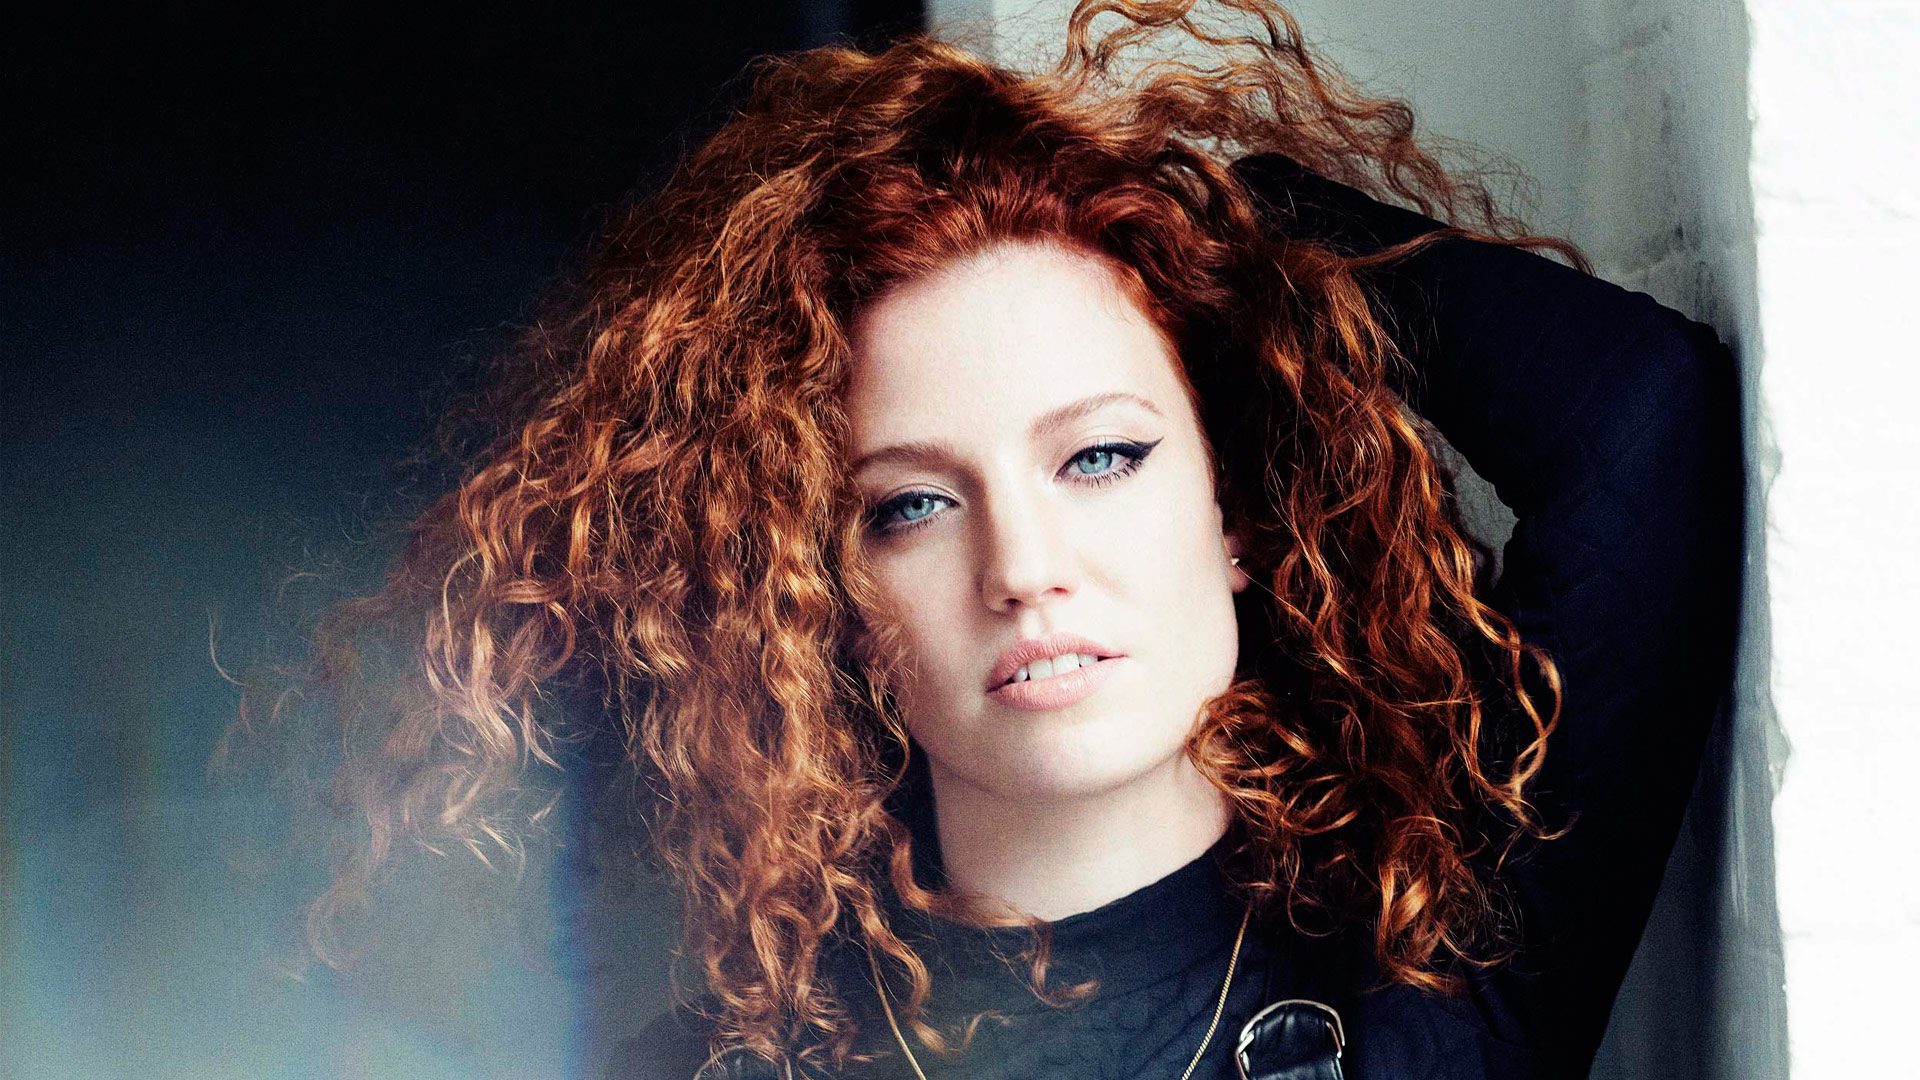 Fotos Jess Glynne nude (19 foto and video), Sexy, Bikini, Selfie, butt 2015